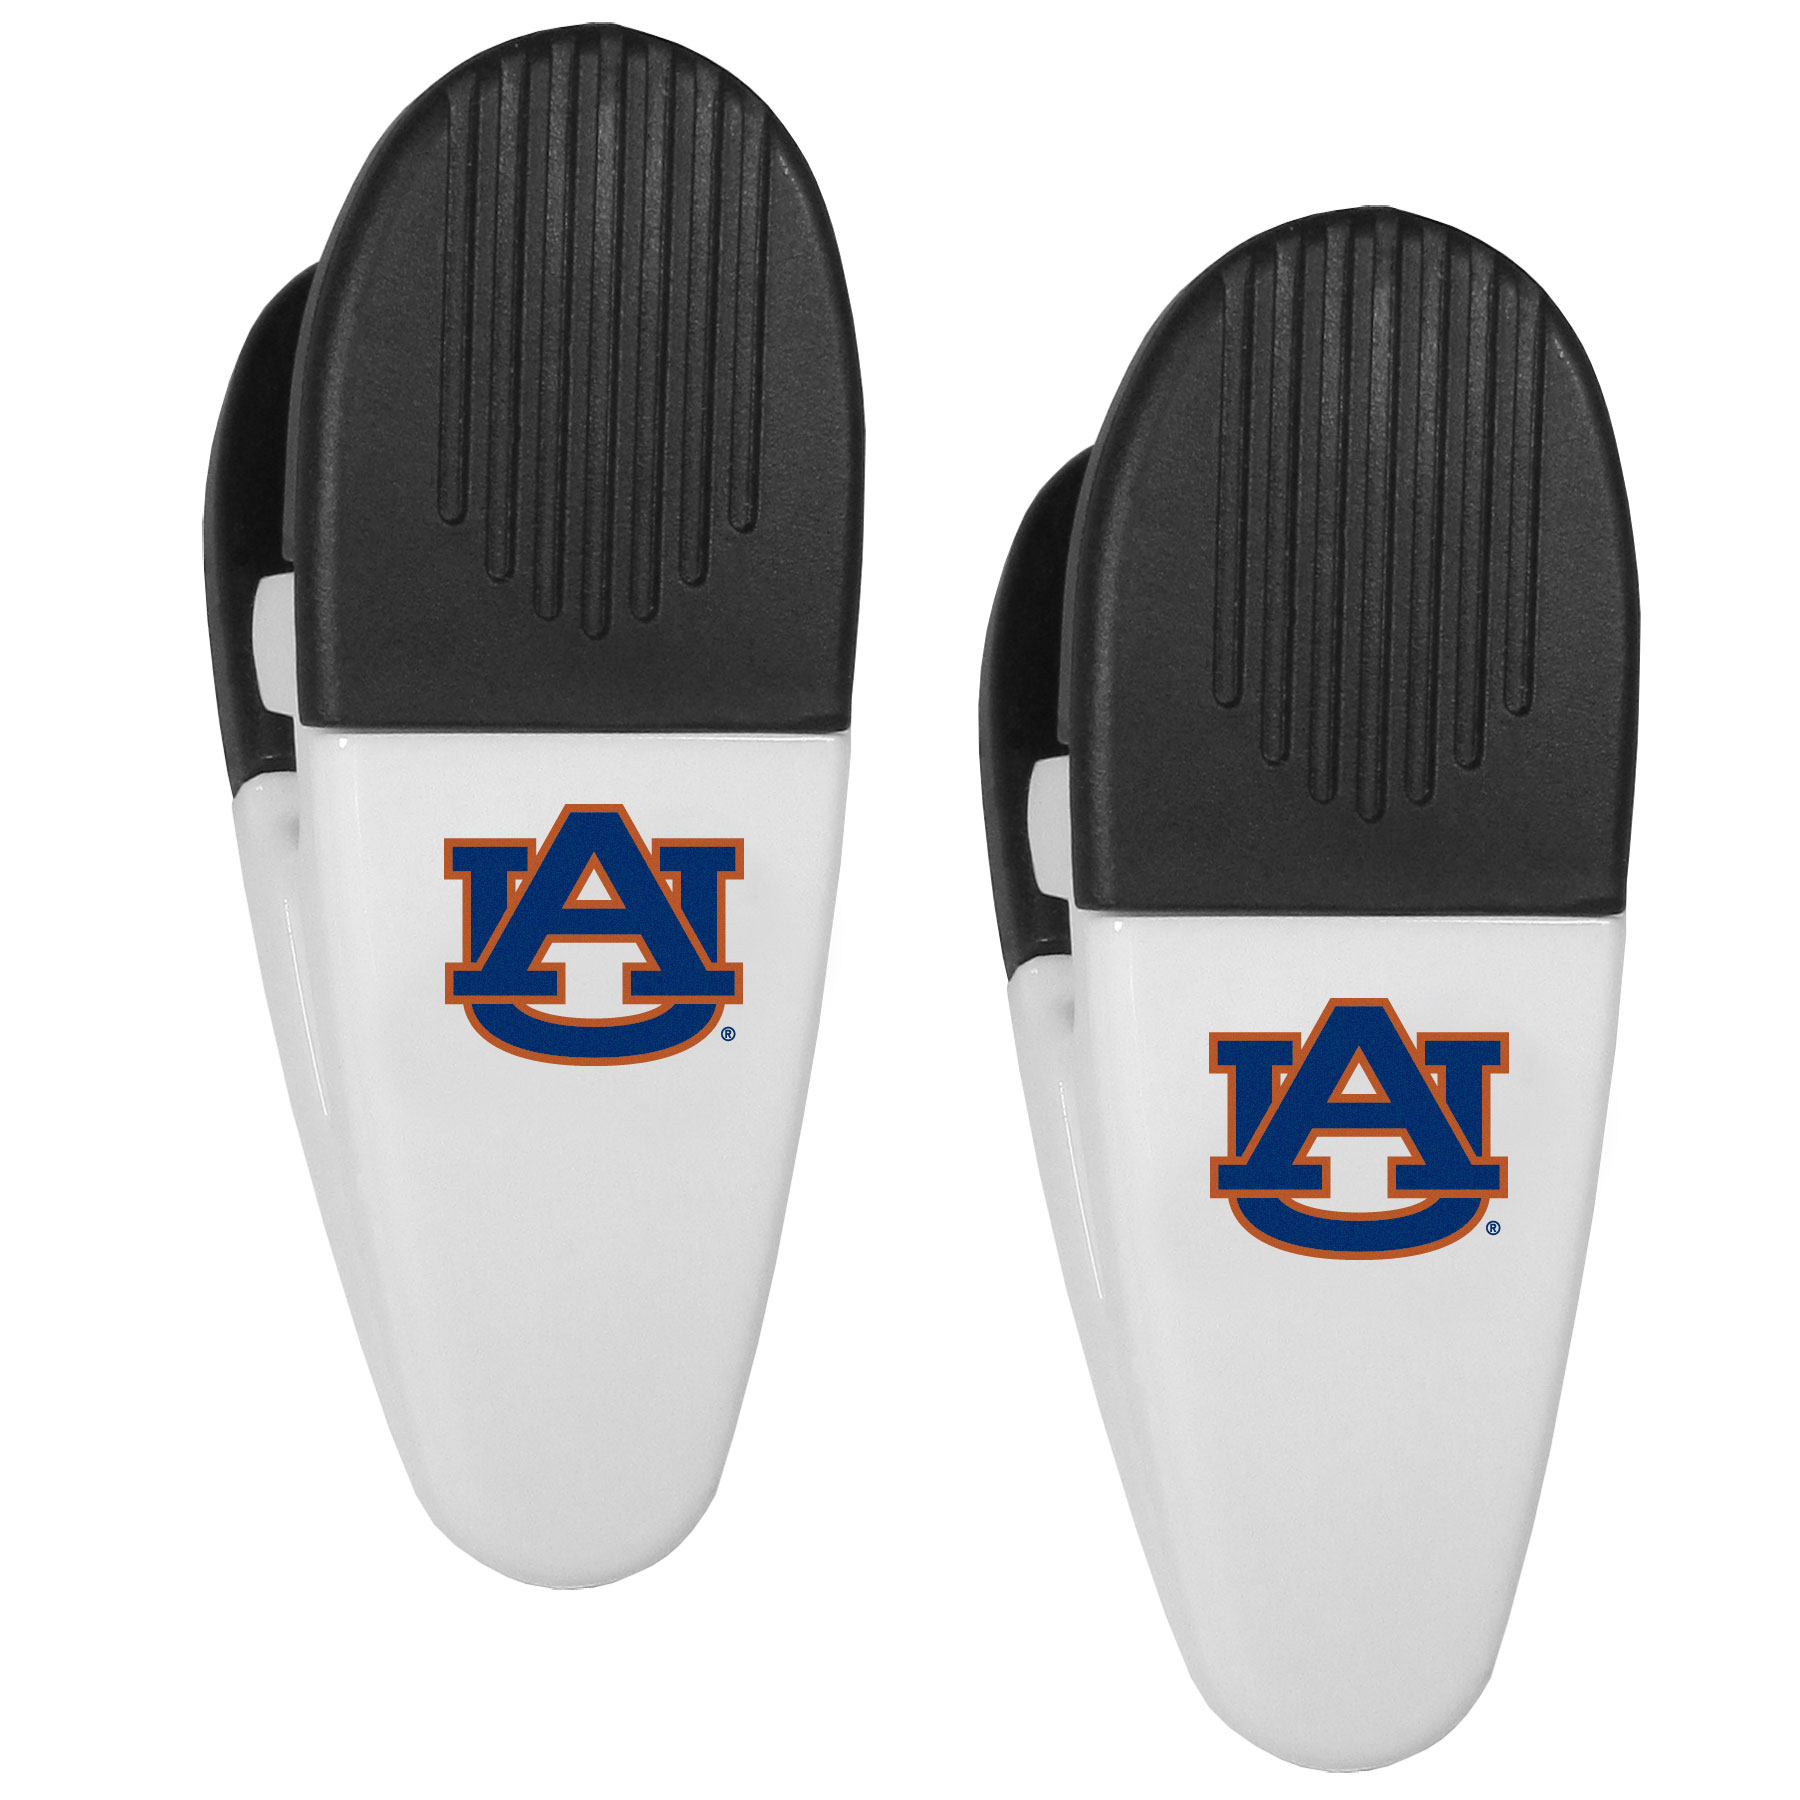 Auburn Tigers Mini Chip Clip Magnets, 2 pk - Our Auburn Tigers chip clip magnets feature a crisp team logo on the front of the clip. The clip is perfect for sealing chips for freshness and with the powerful magnet on the back it can be used to attach notes to the fridge or hanging your child's artwork. Set of 2 magnet clips, each clip is 3.5 inches tall and 1.25 inch wide.